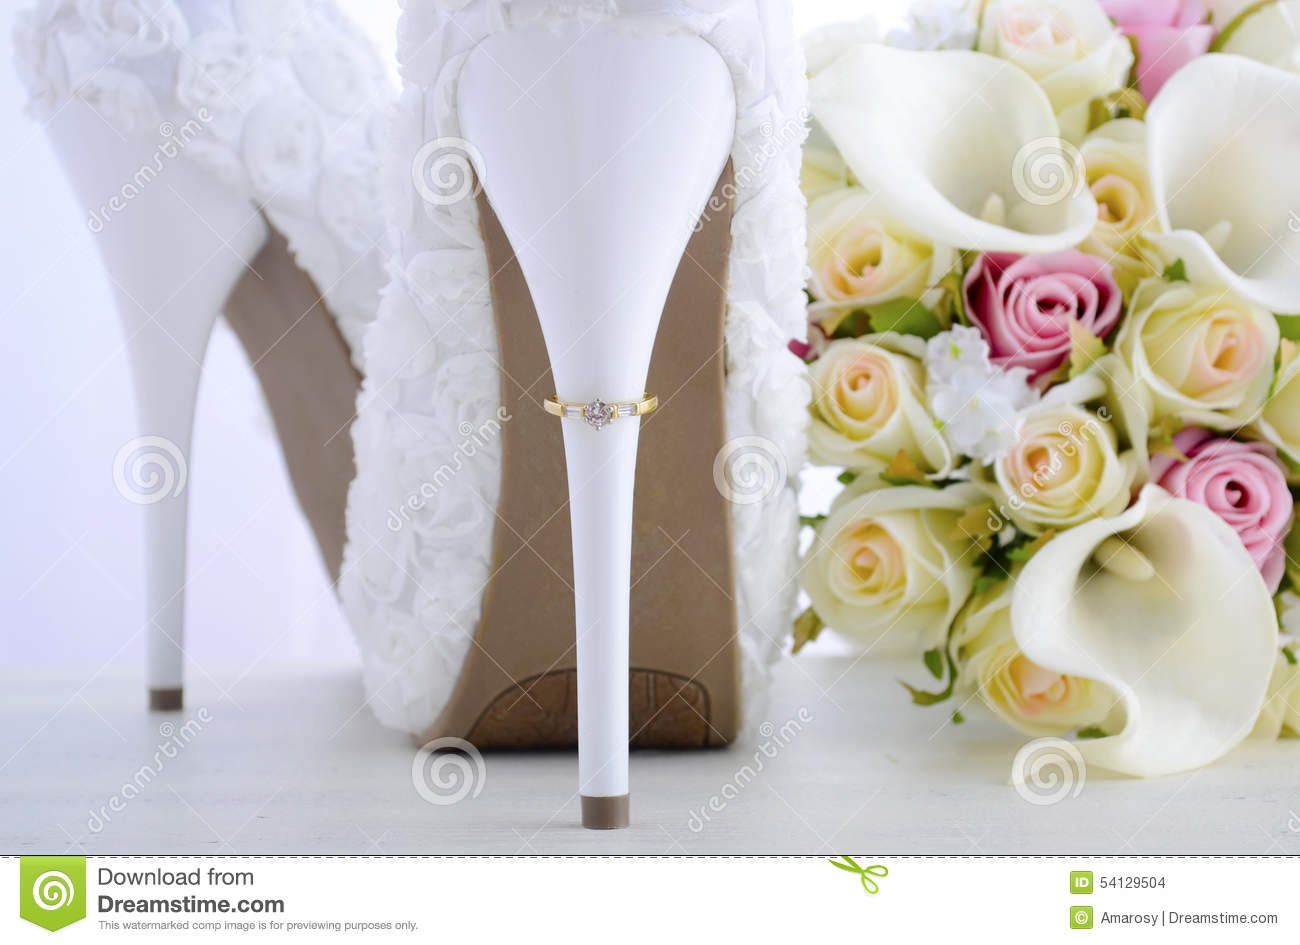 wedding ring beautiful white stiletto shoe heel day concept rings floral bridal shoes bouquet shabby chic wood 54129504